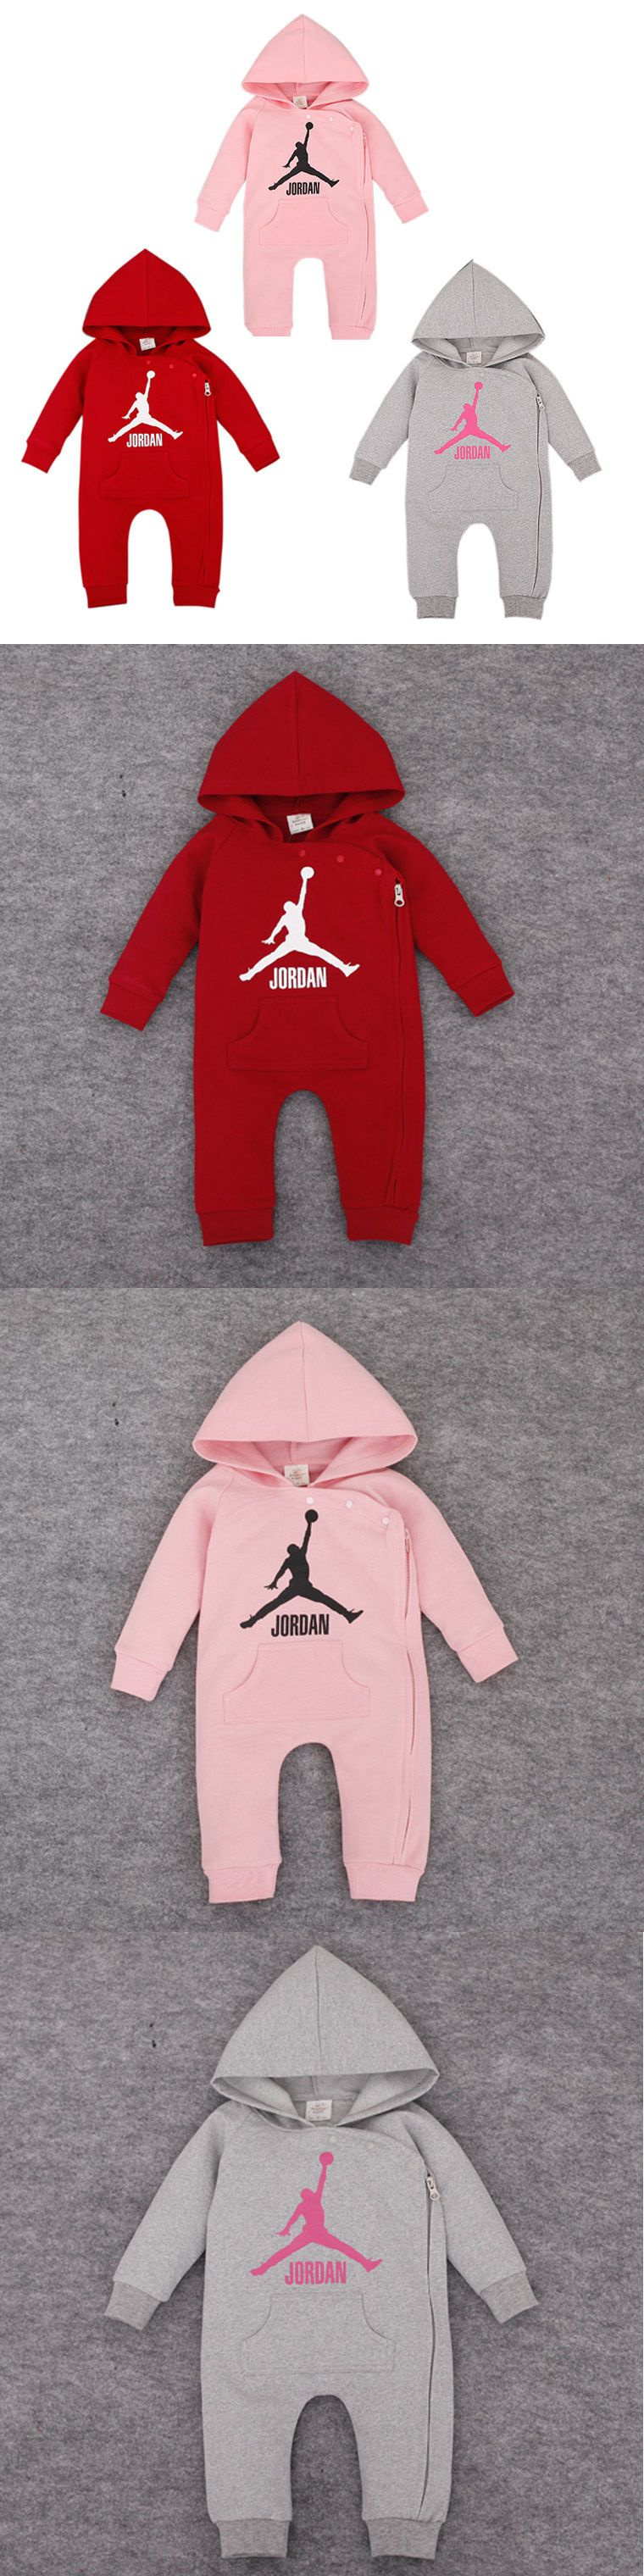 e0220c19f30b Outfits and Sets 147333  2018 Baby Jordan 23 Romper +Hat Boy Girl Long  Sleeve